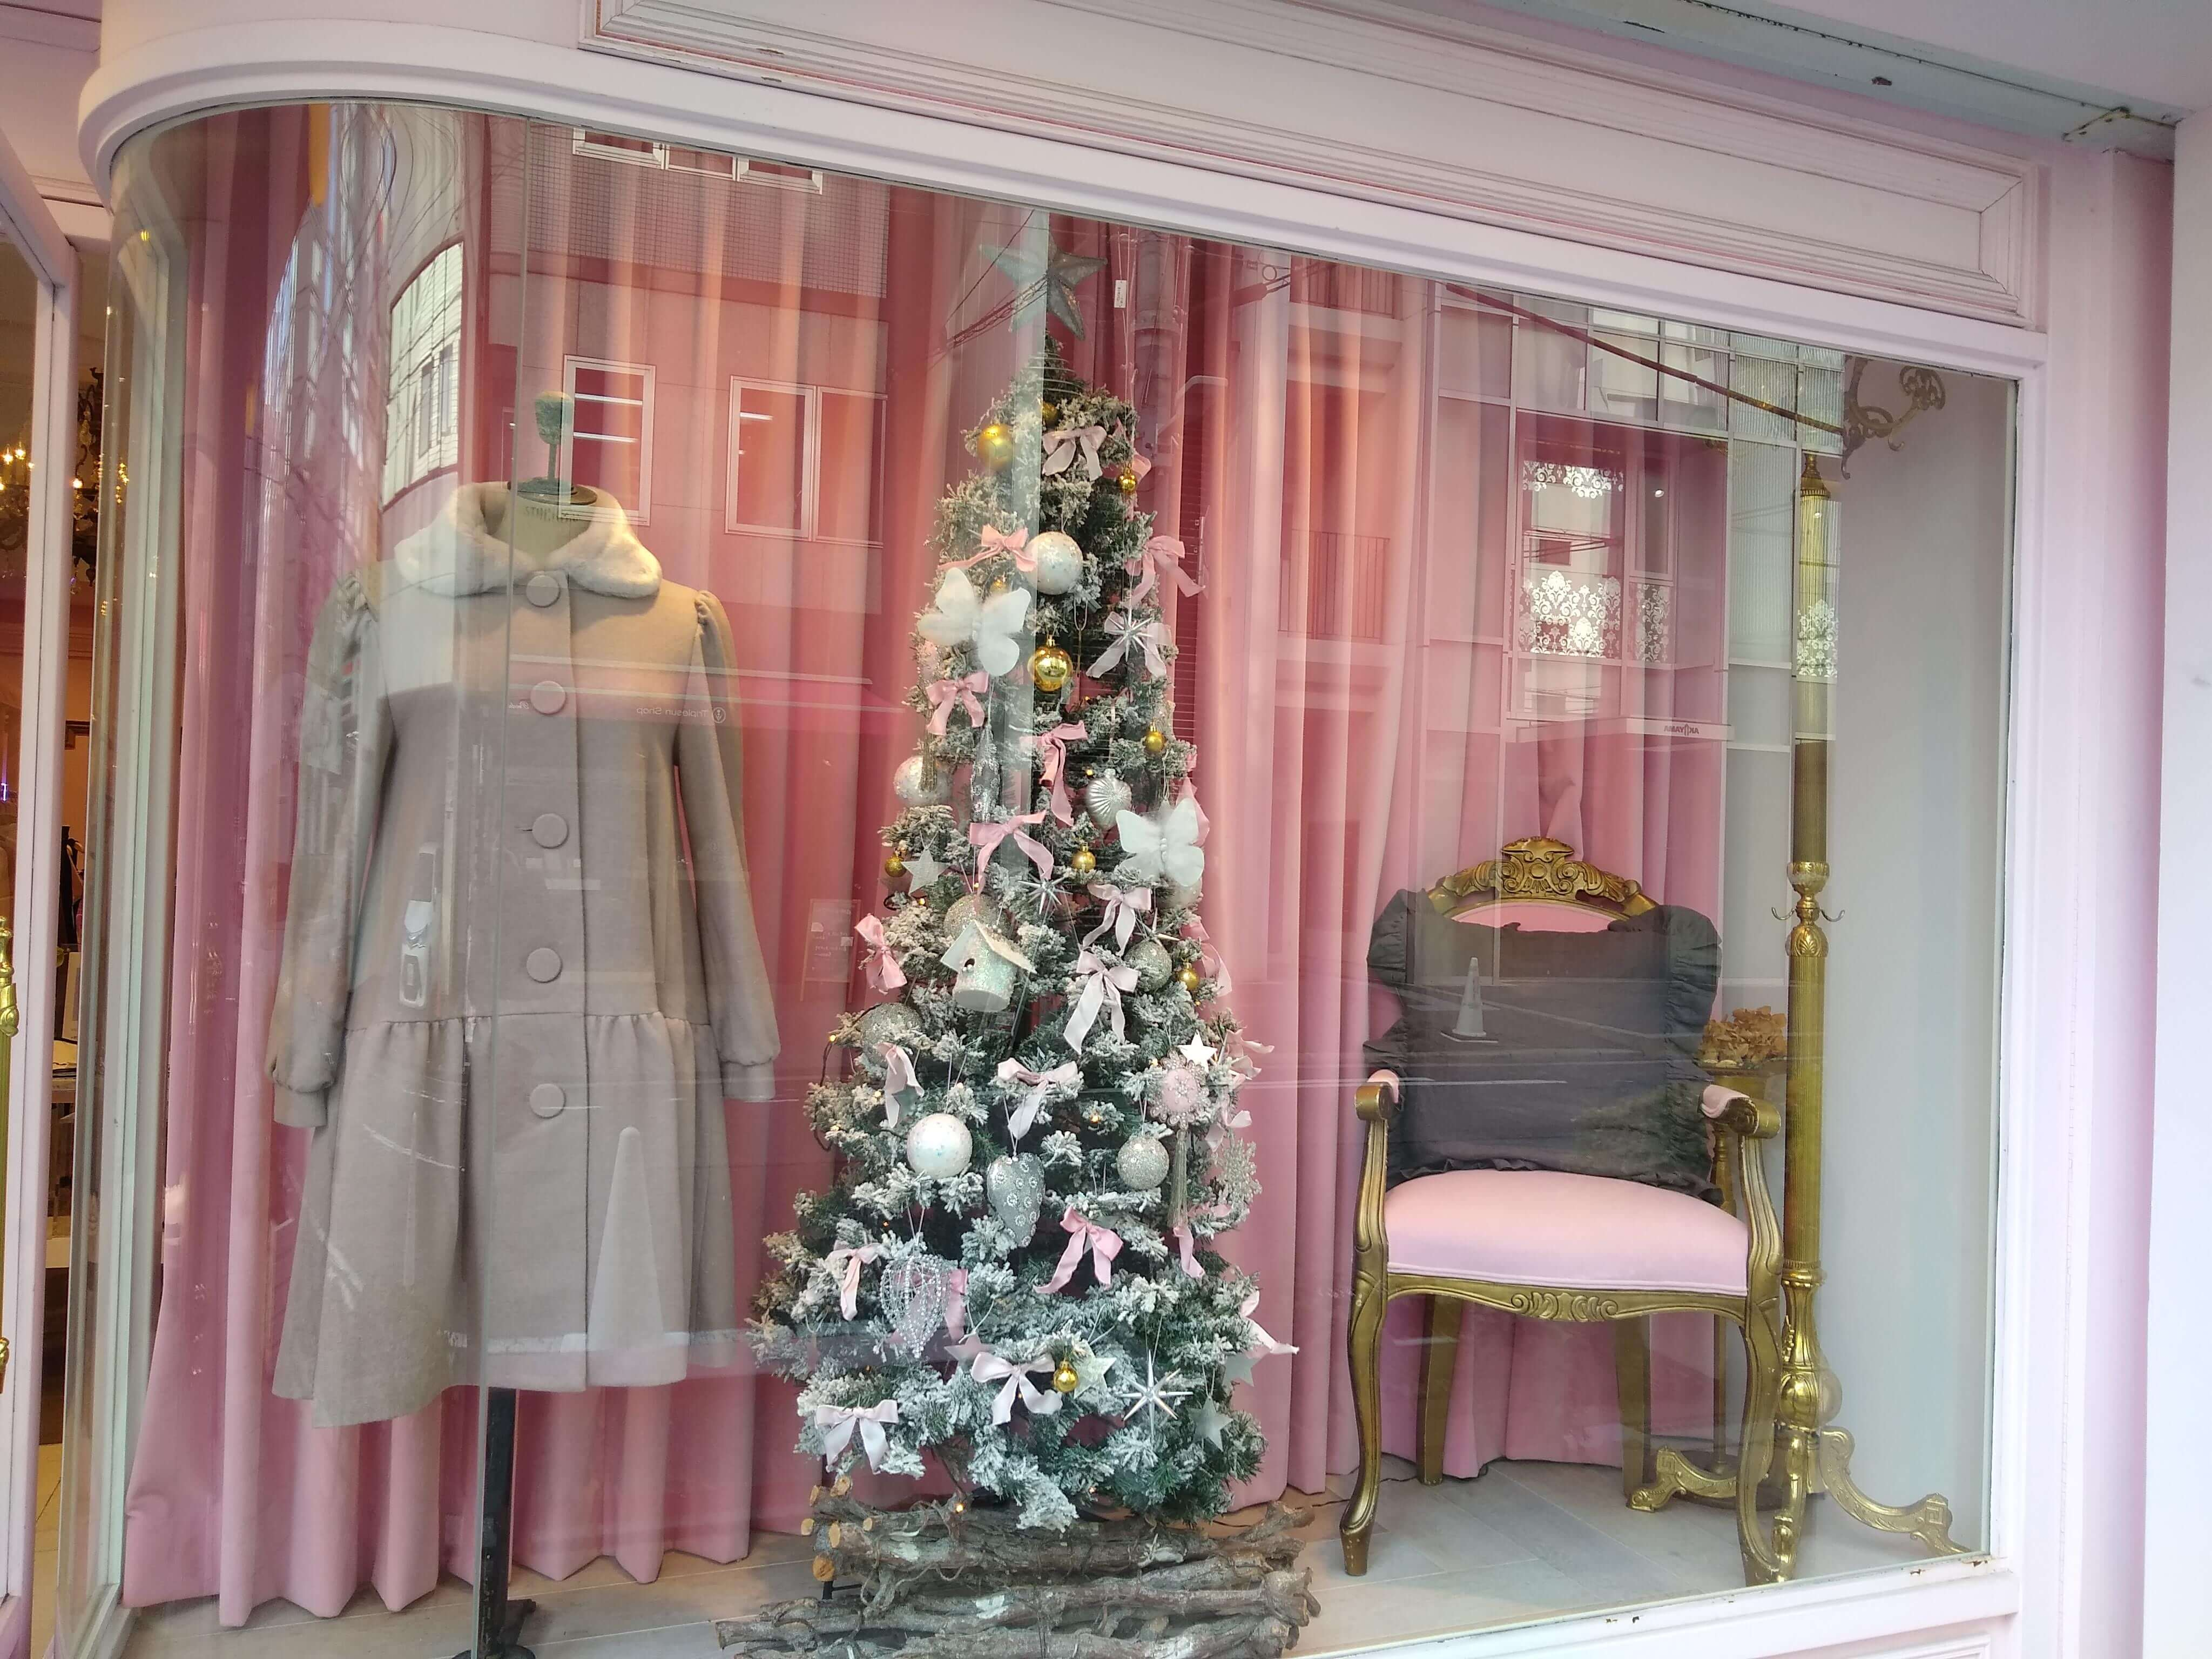 Japanese store decorated with a Christmas tree